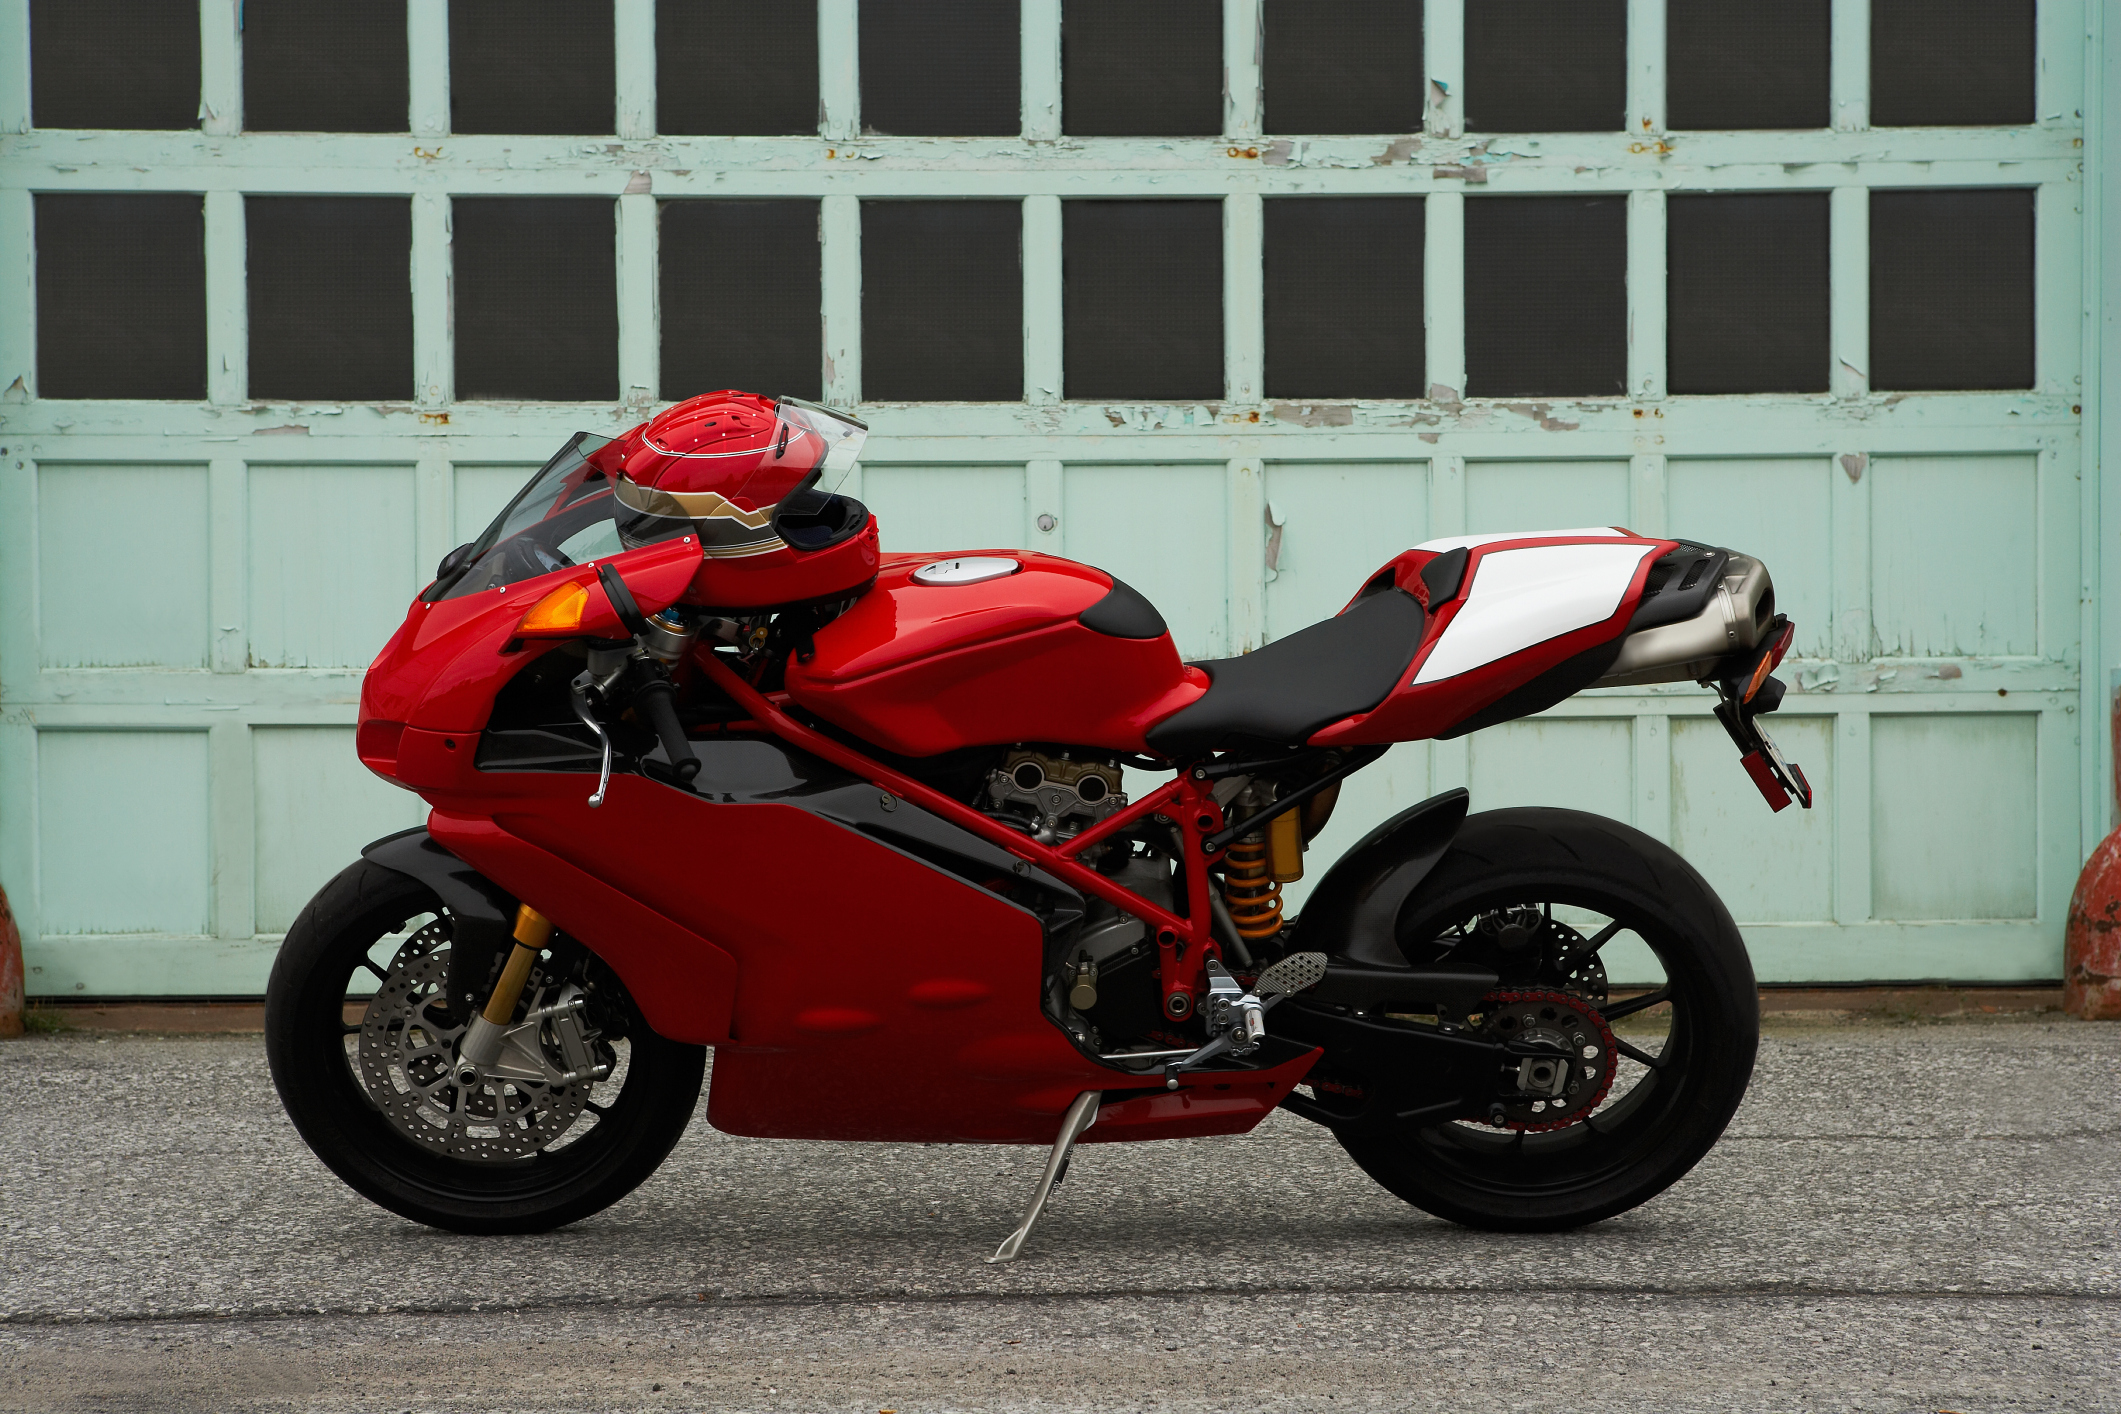 How Much Money Can a Motorcycle Engineer Make? | Bizfluent